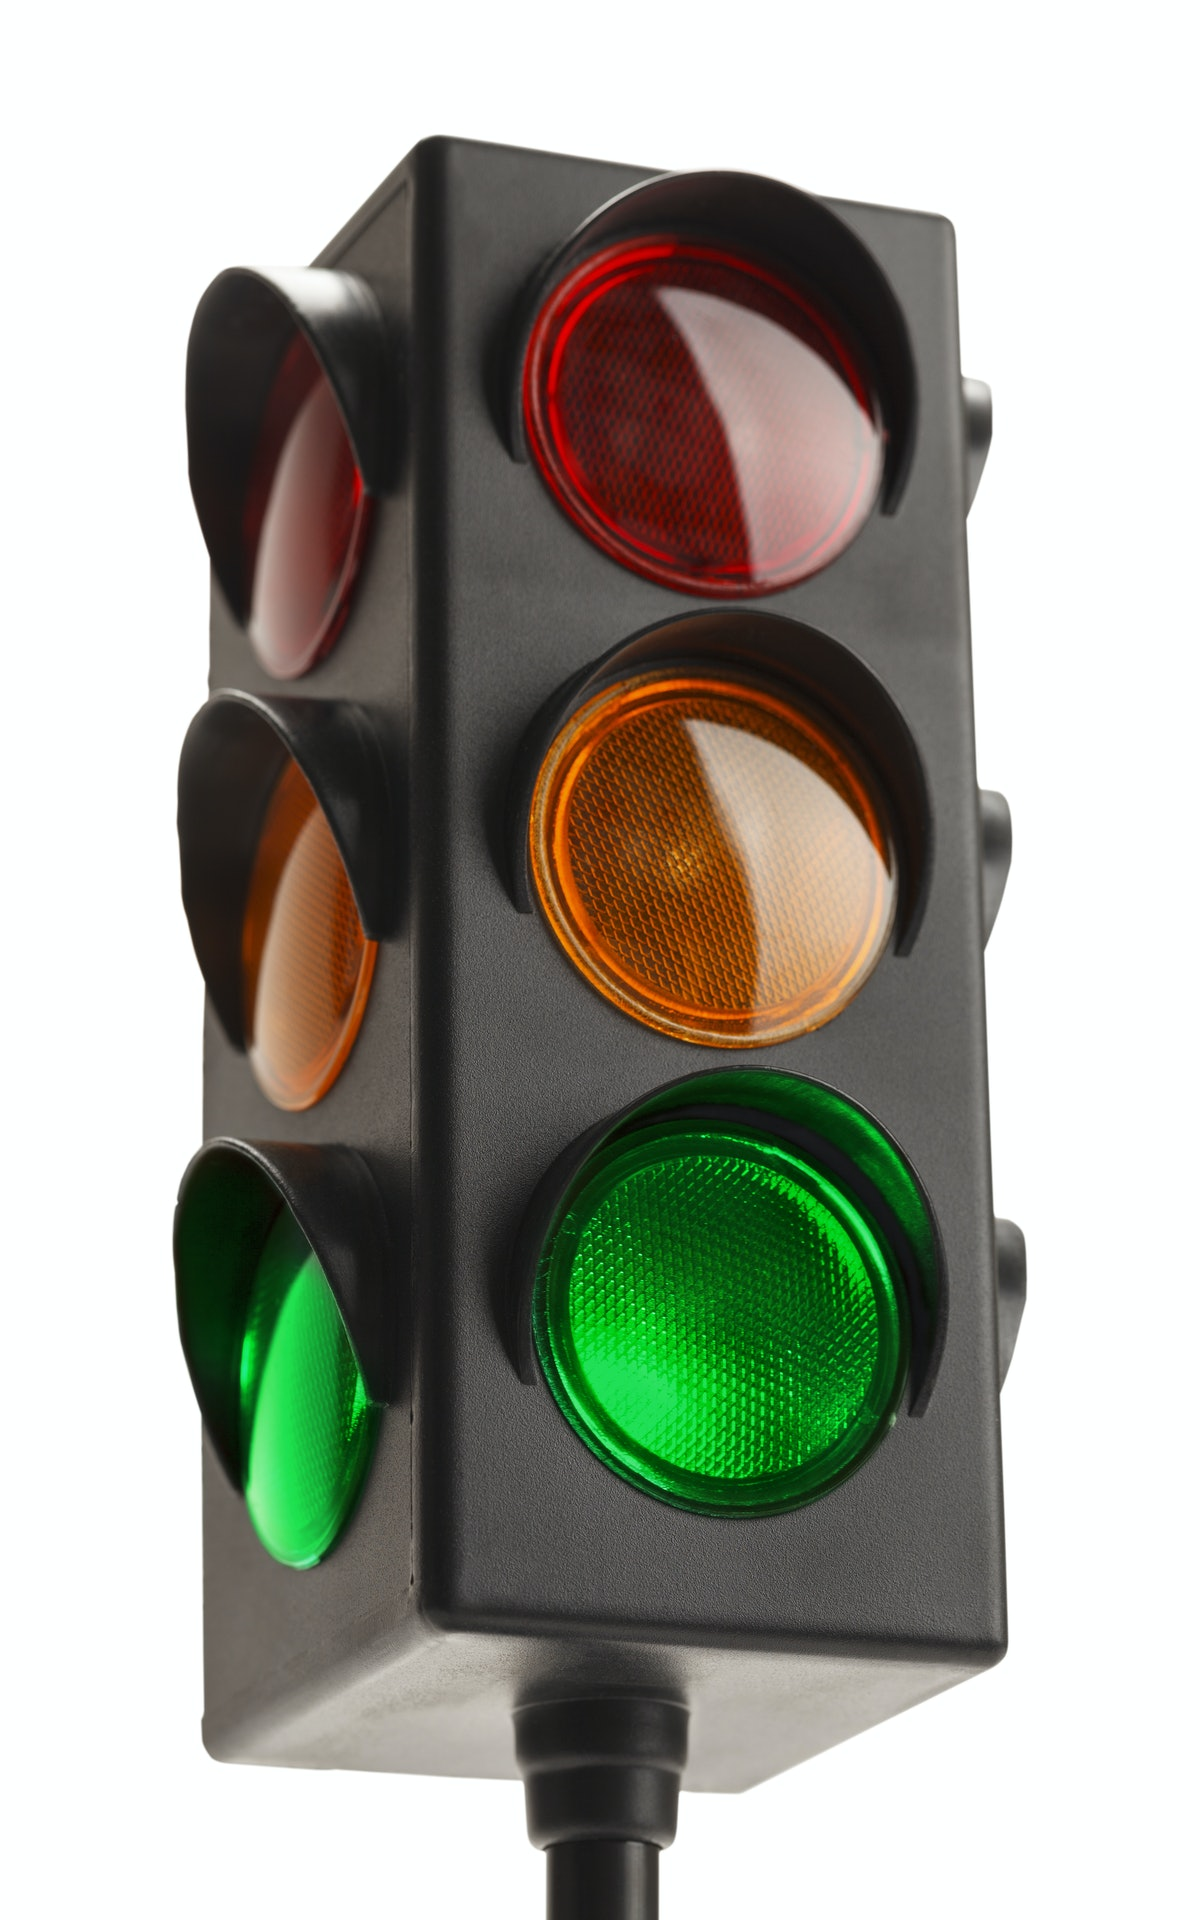 Stop Light With Green Go Signal Isolated on White Background.